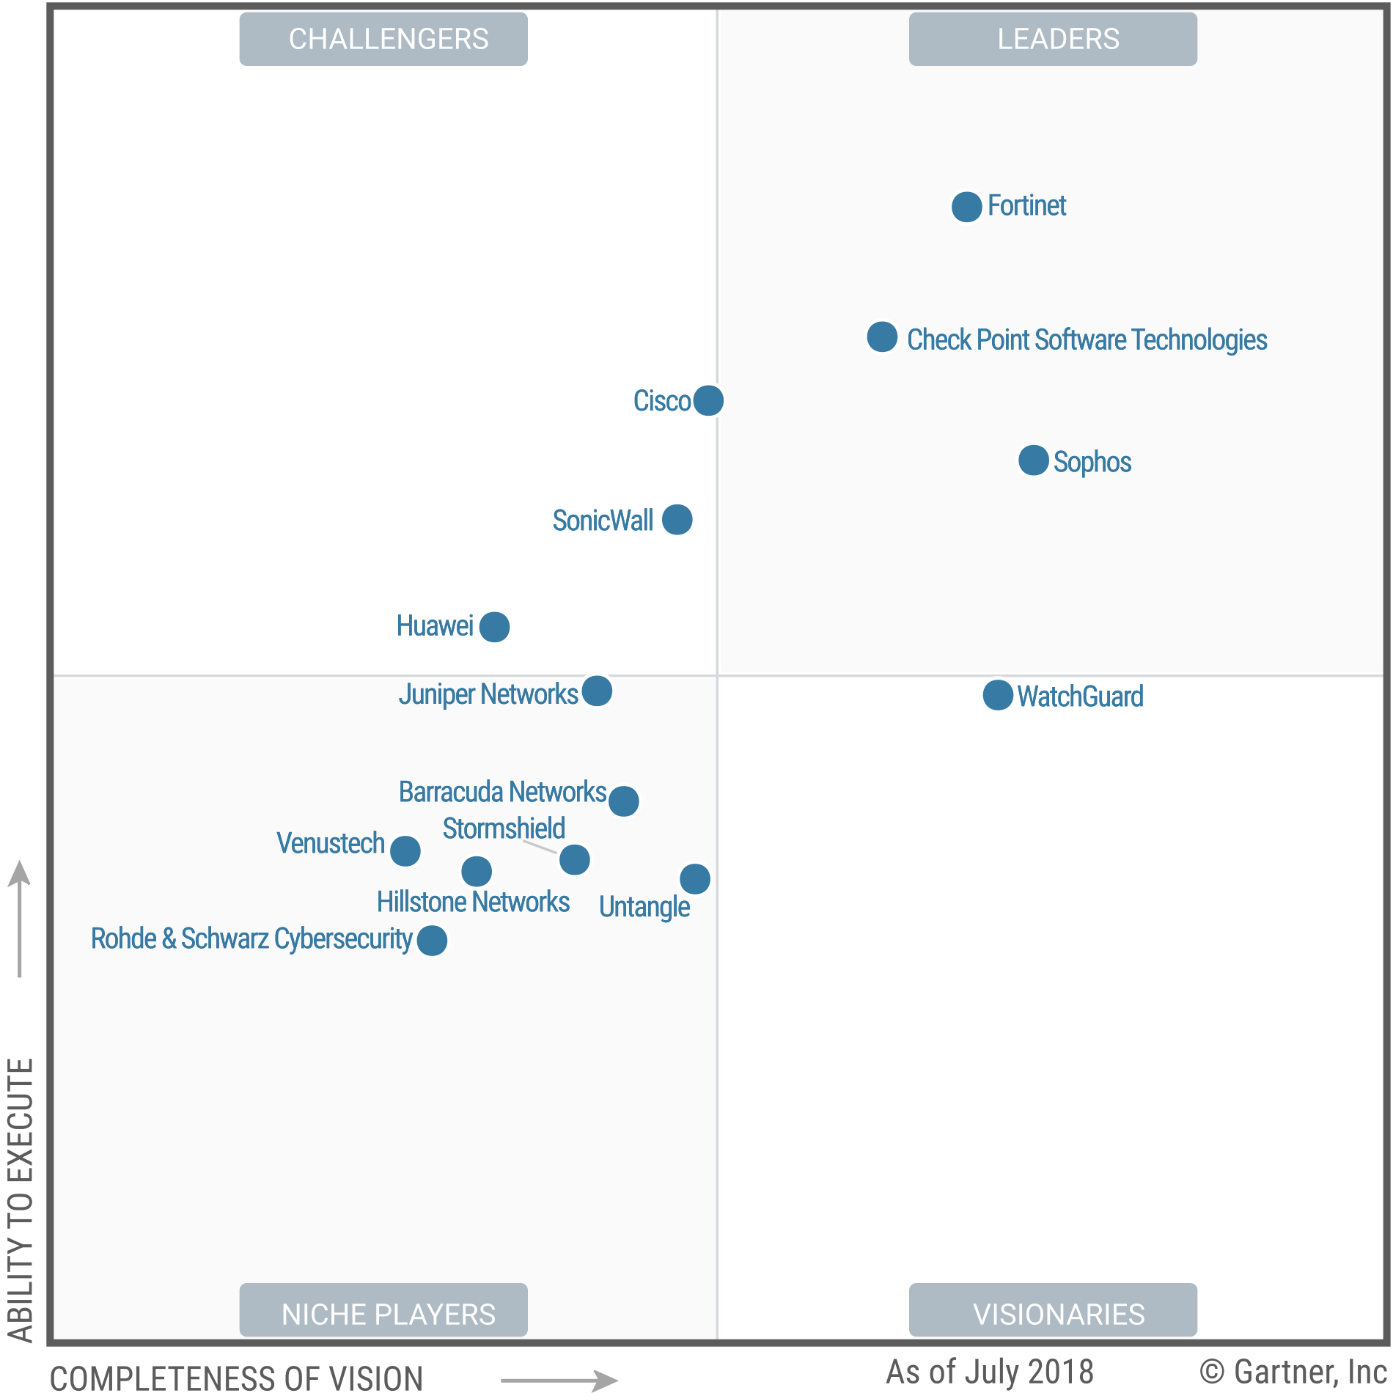 Magic Quadrant for Unified Threat Management 2018 (G00336625)